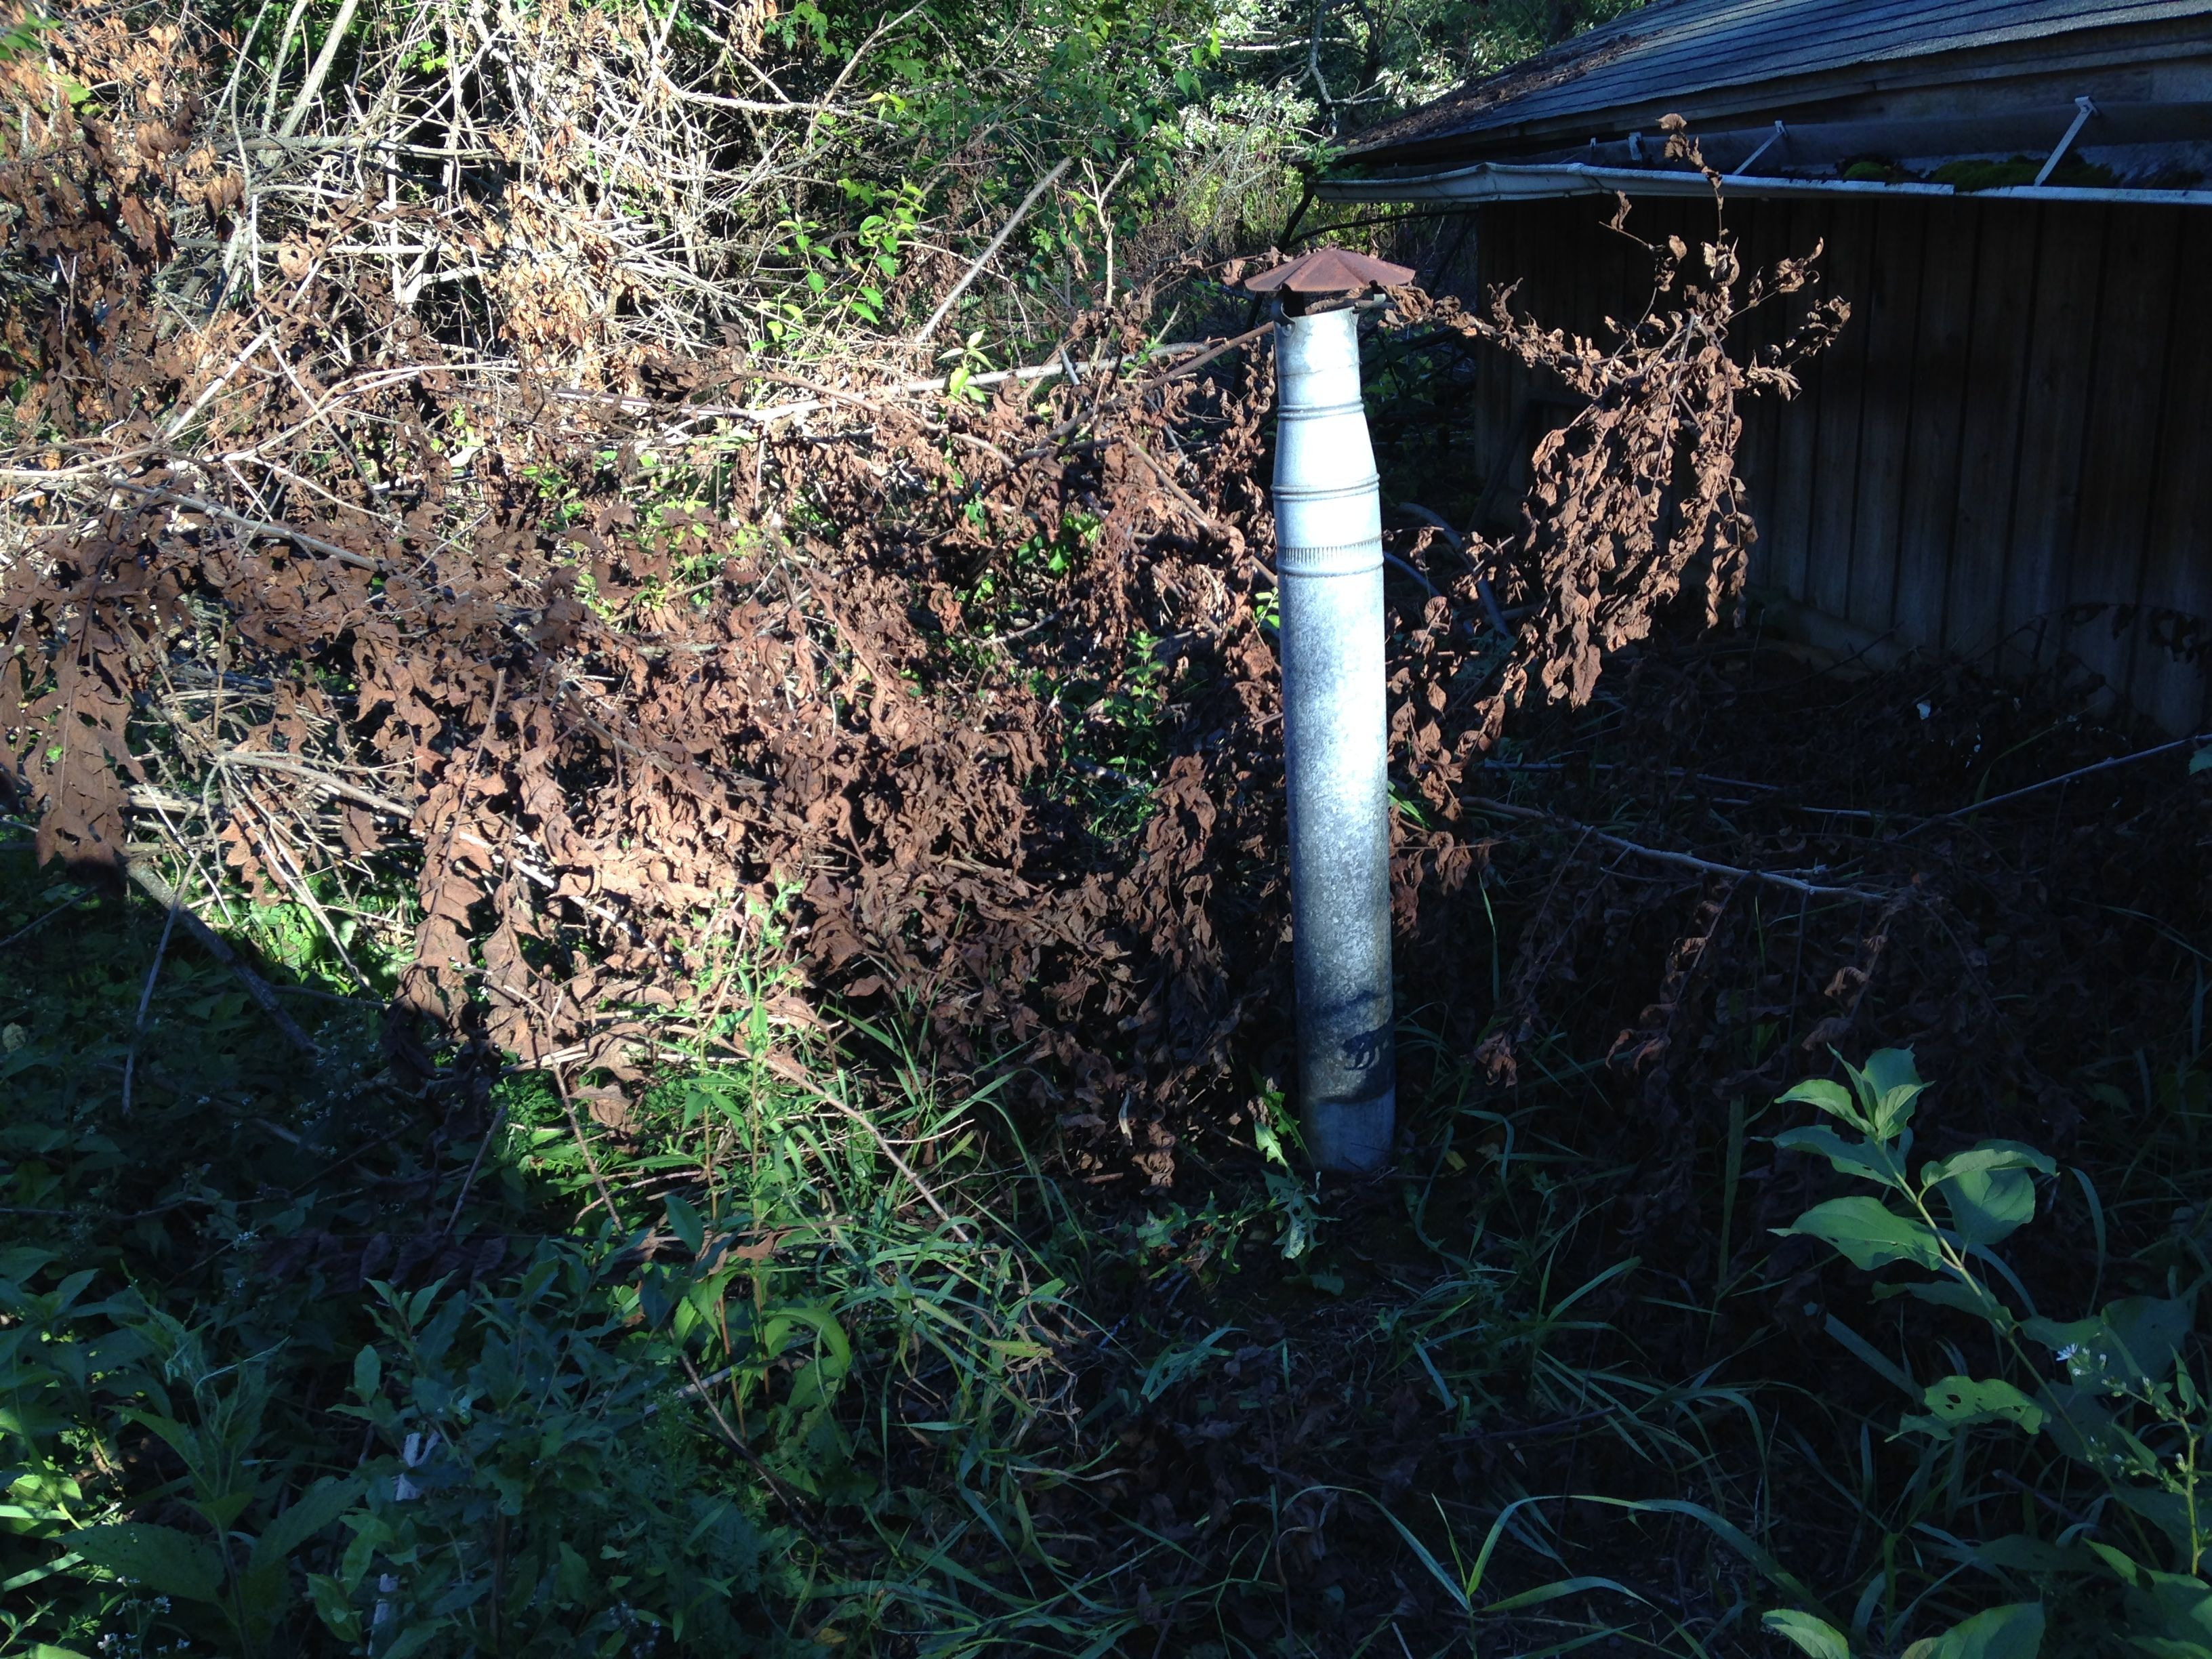 External view of root cellar exhaust vent.